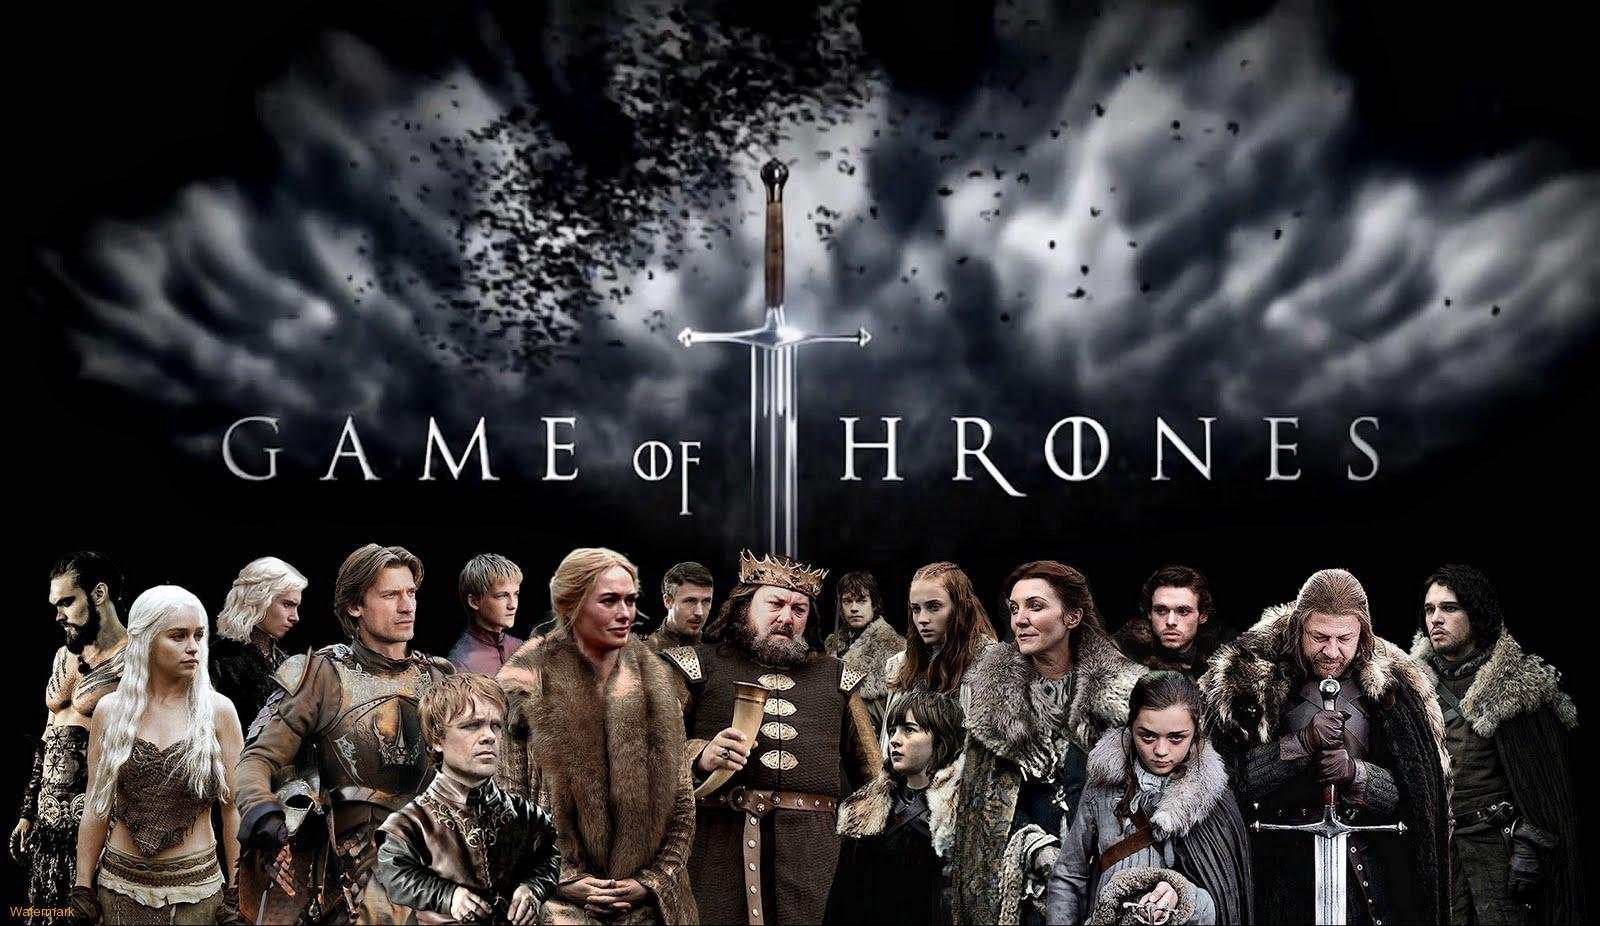 TV Review: Game of Thrones Season 5